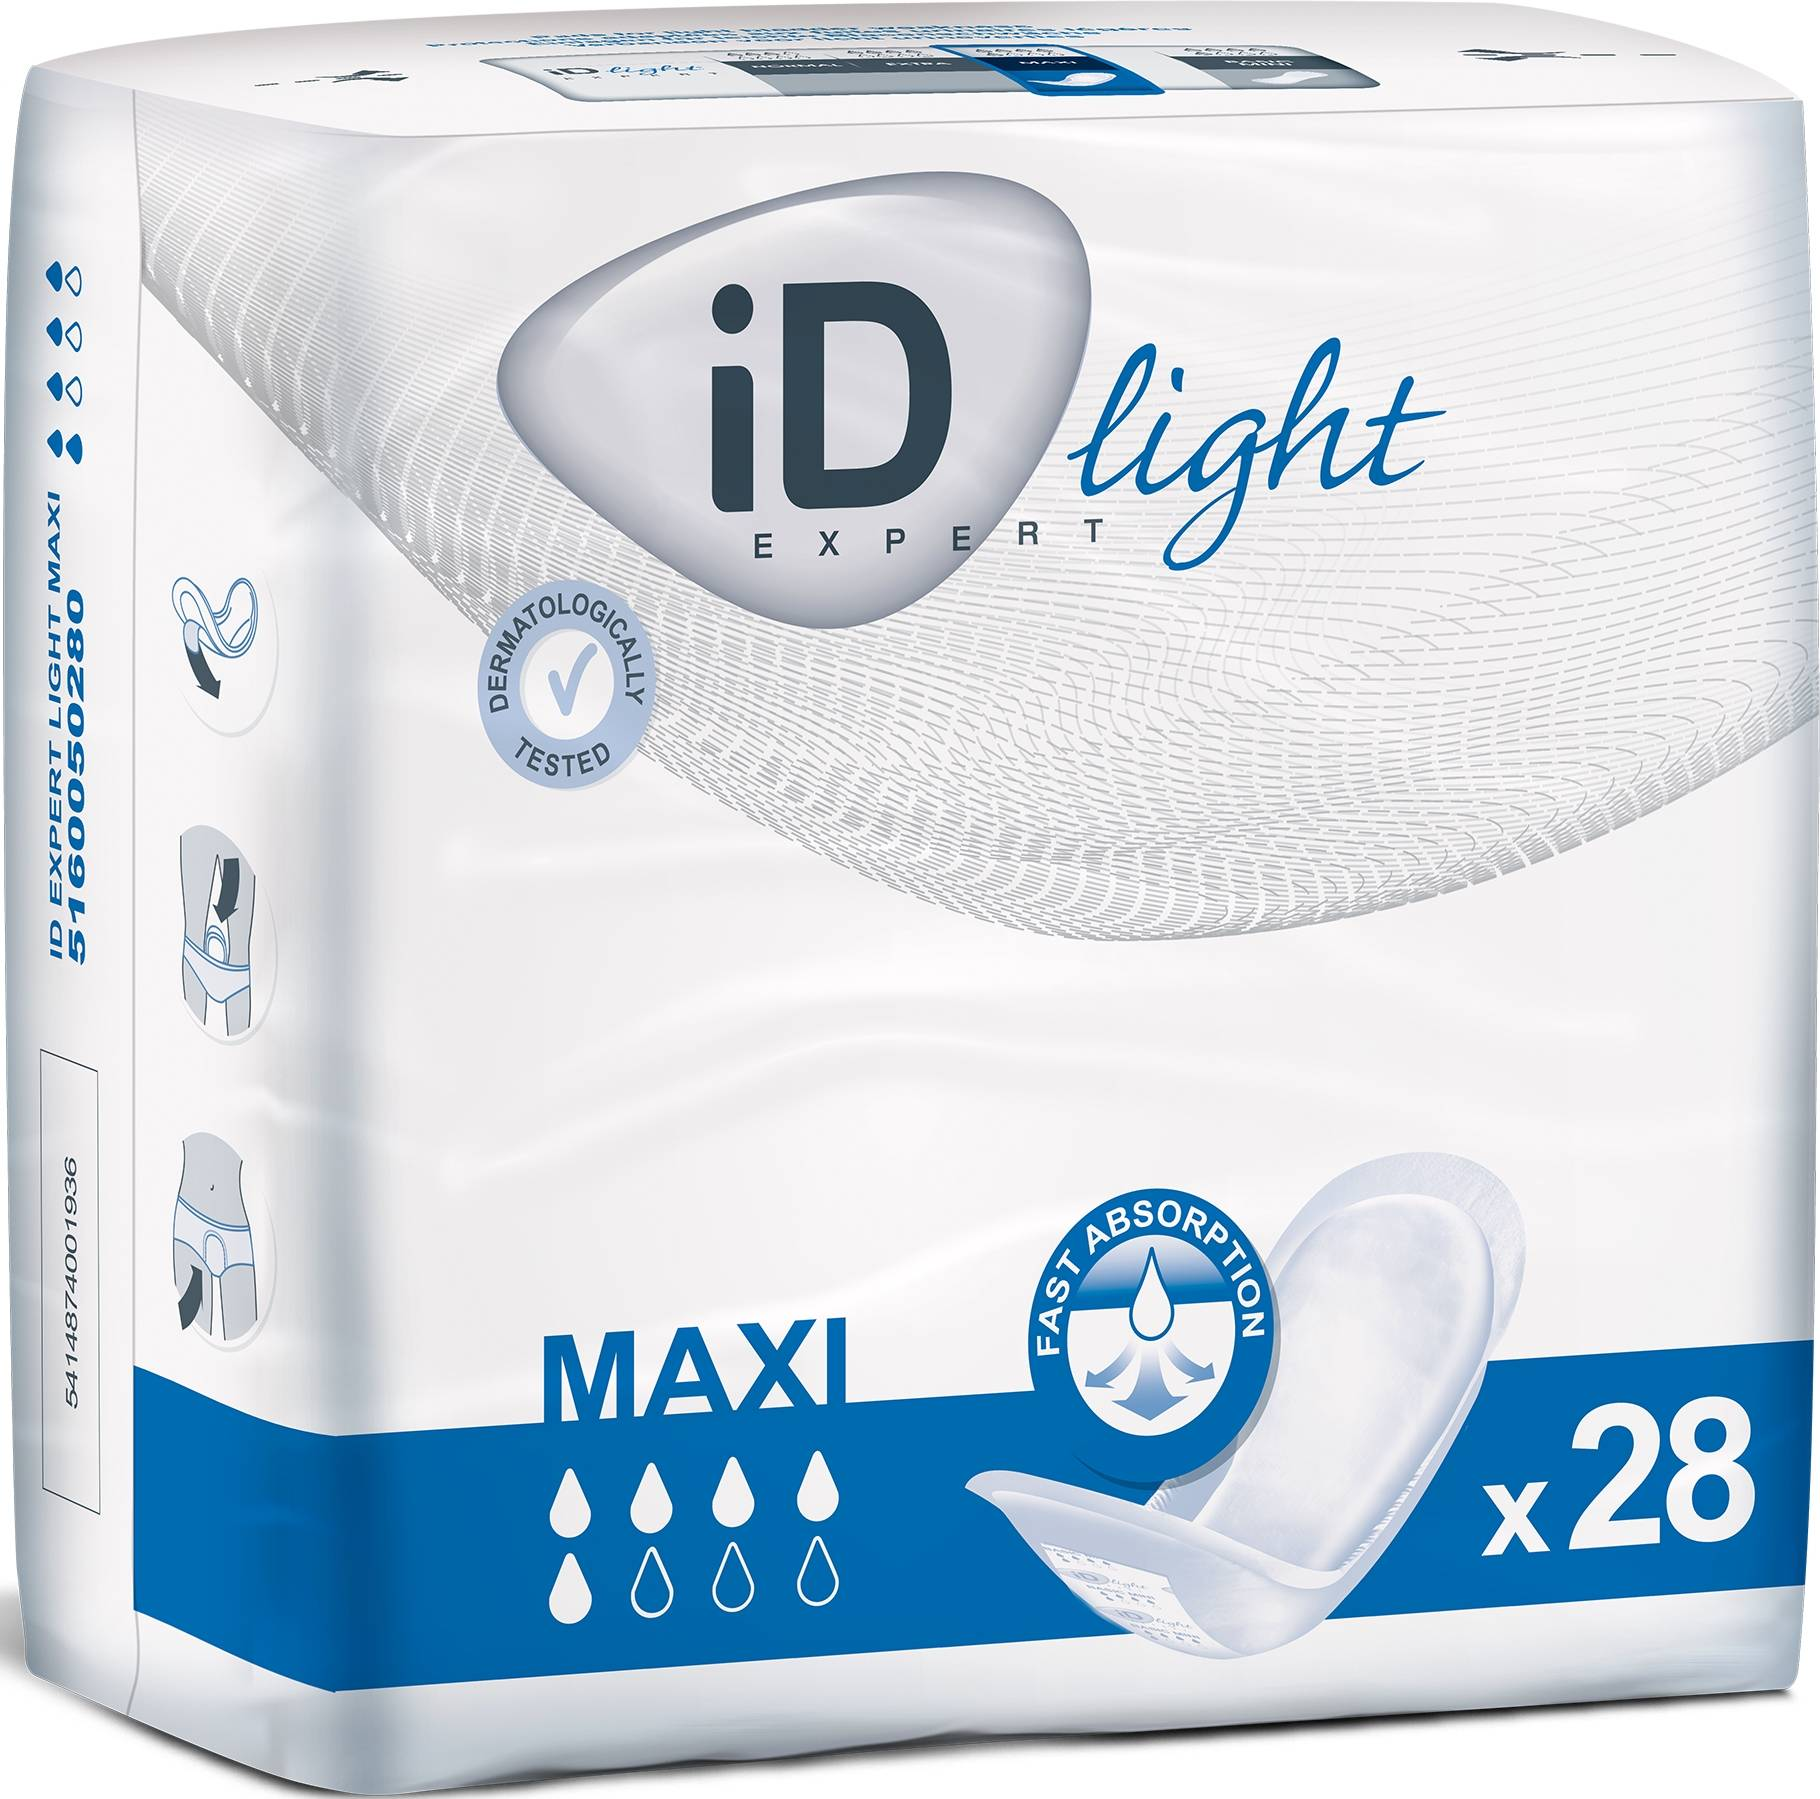 iD Expert Light Maxi - 28 protections anatomiques